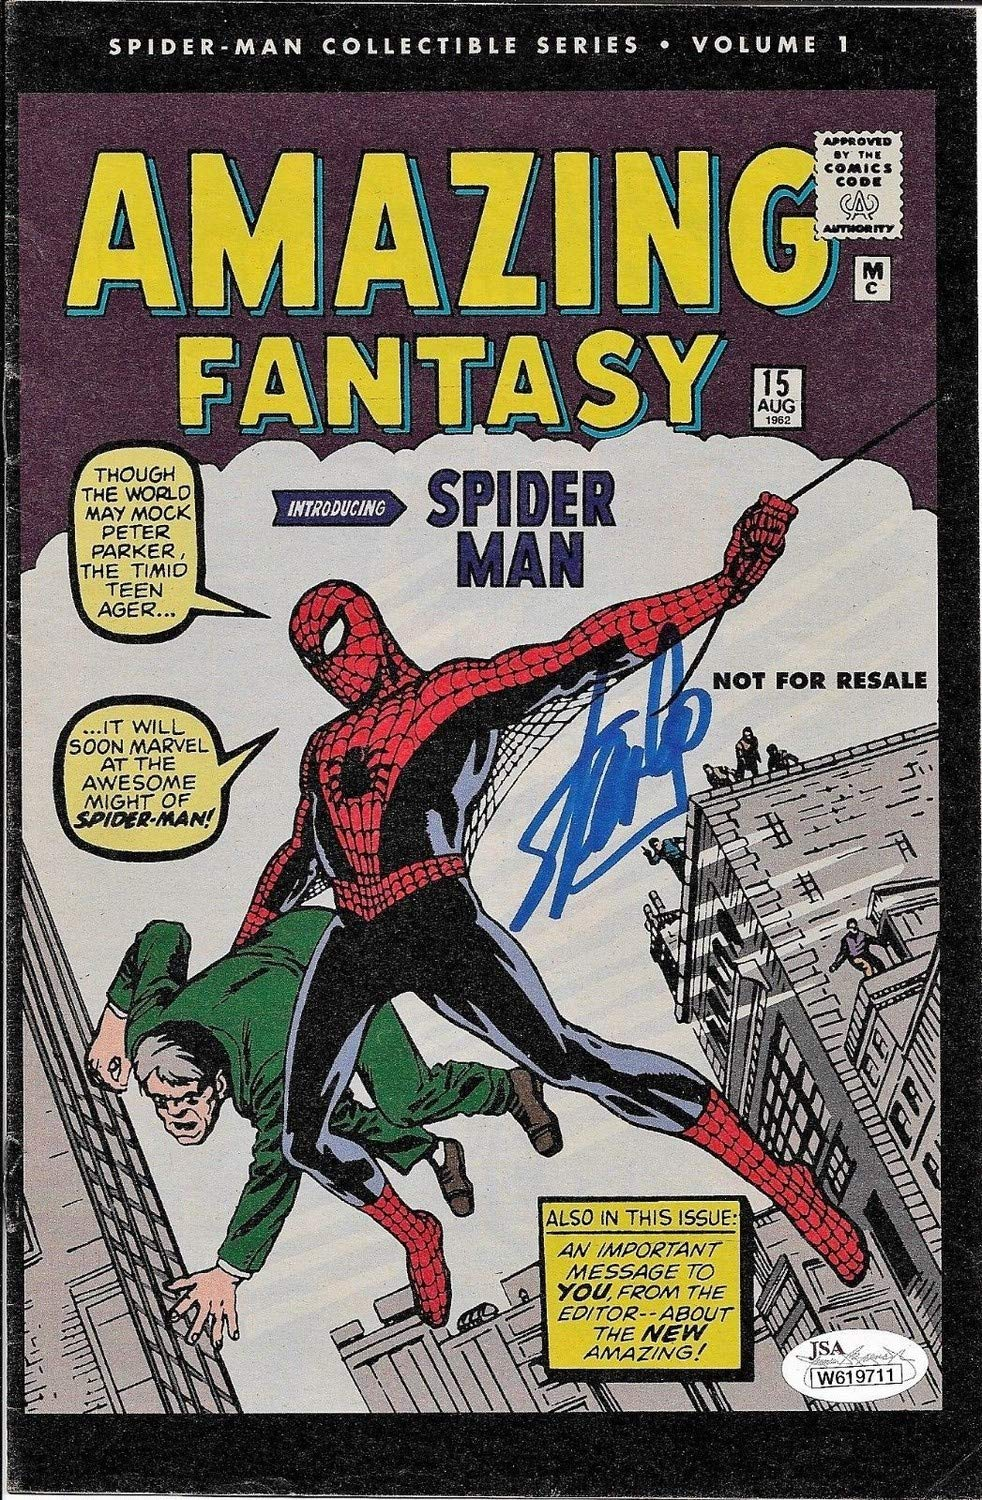 Stan Lee Autographed Signed Amazing Fantasy Spider Man Comic Book JSA Authentic